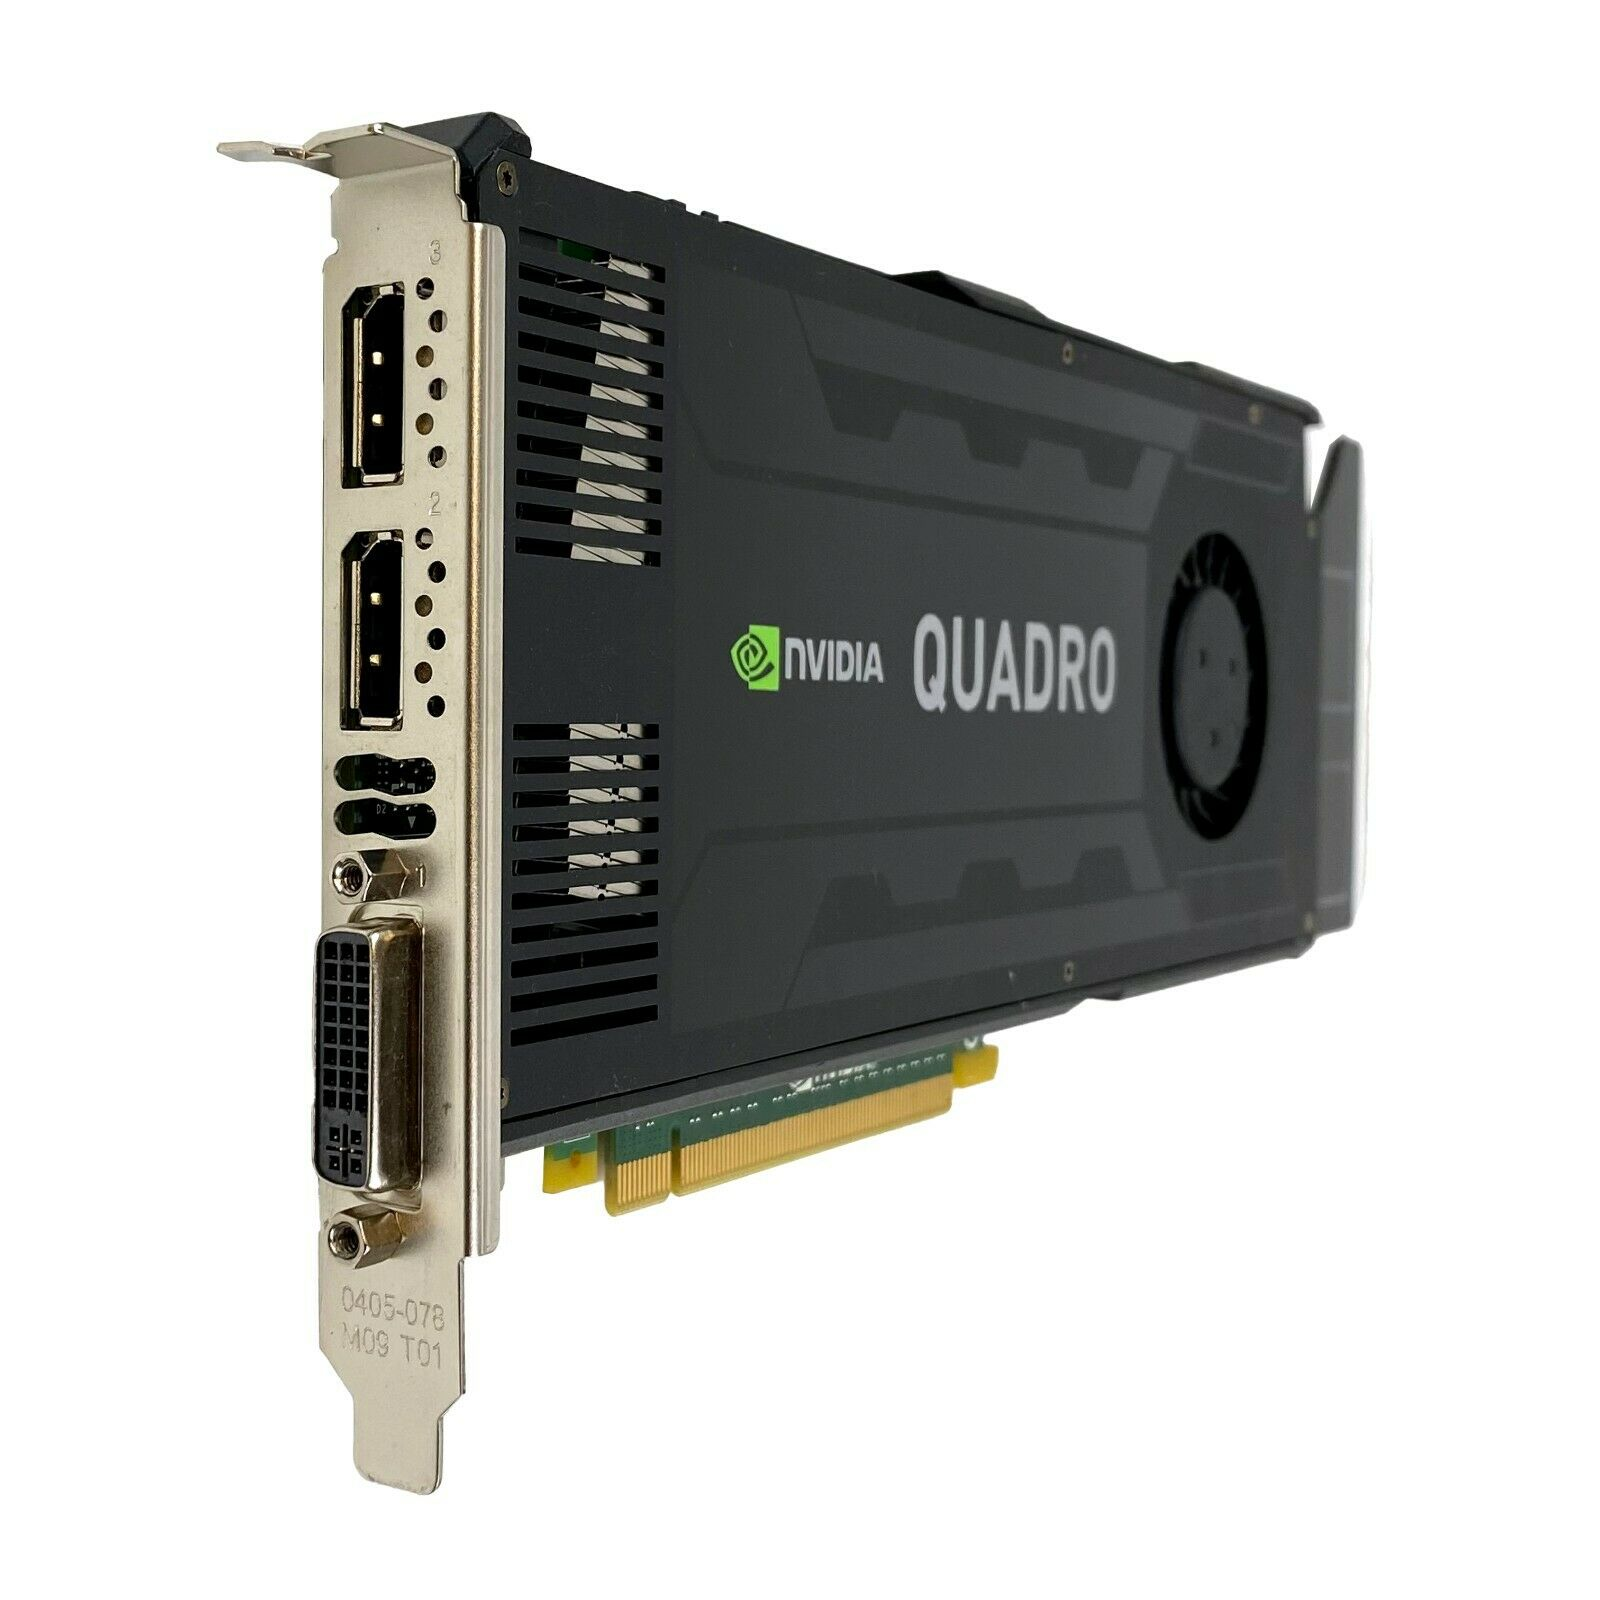 K4000 Nvidia Quadro 3GB GDDR5 PCI Express 2.0 x16 Video Graphics Card